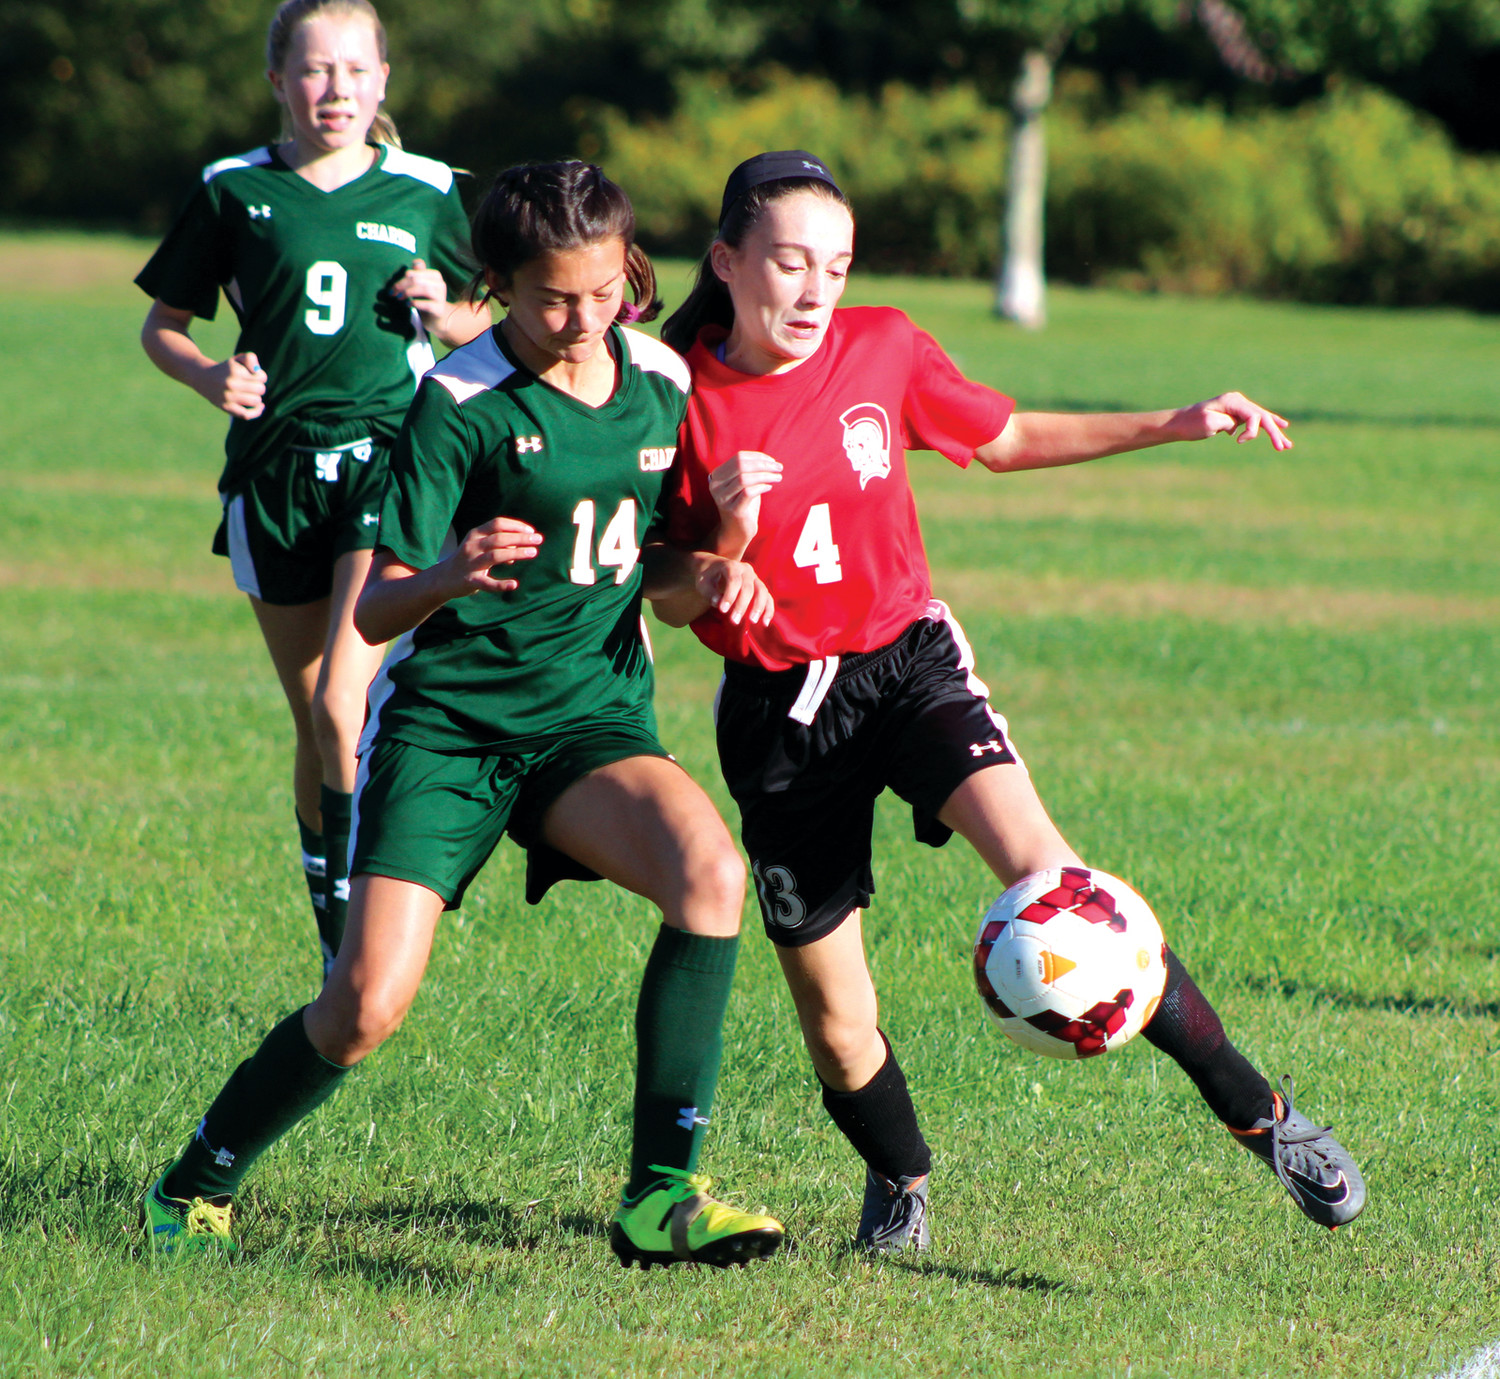 BATTLE: Winman's Alison Pankowicz fights for the ball.